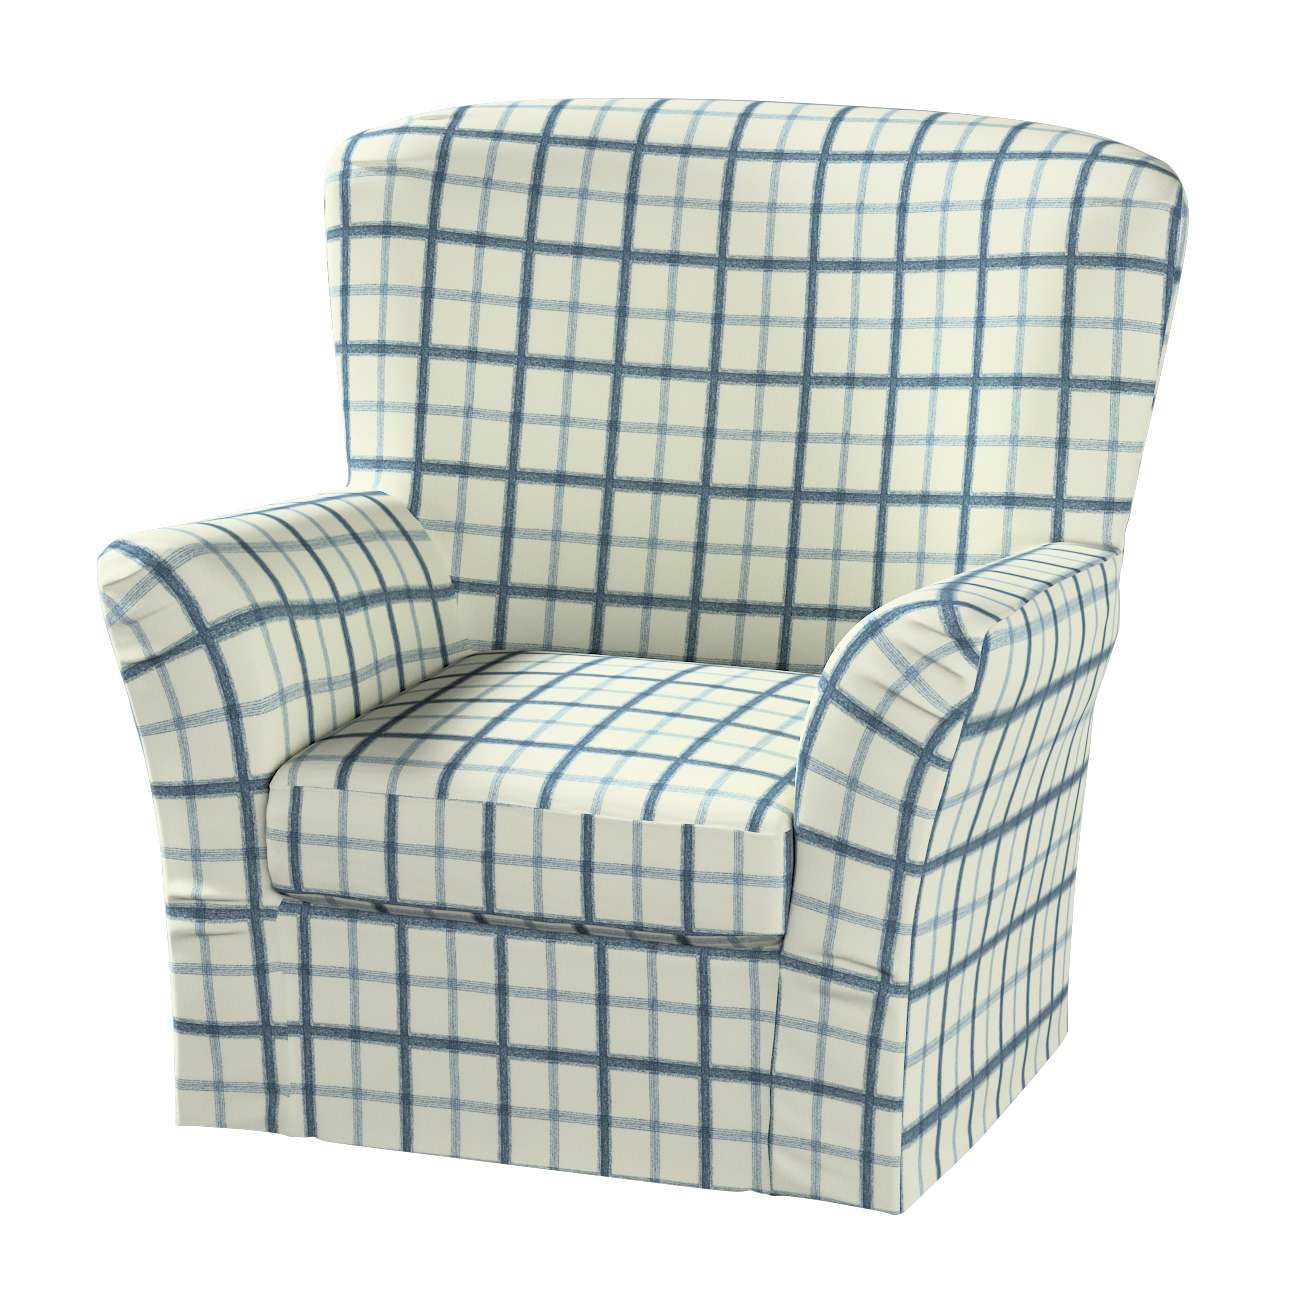 Tomelilla armchair  in collection Avinon, fabric: 131-66